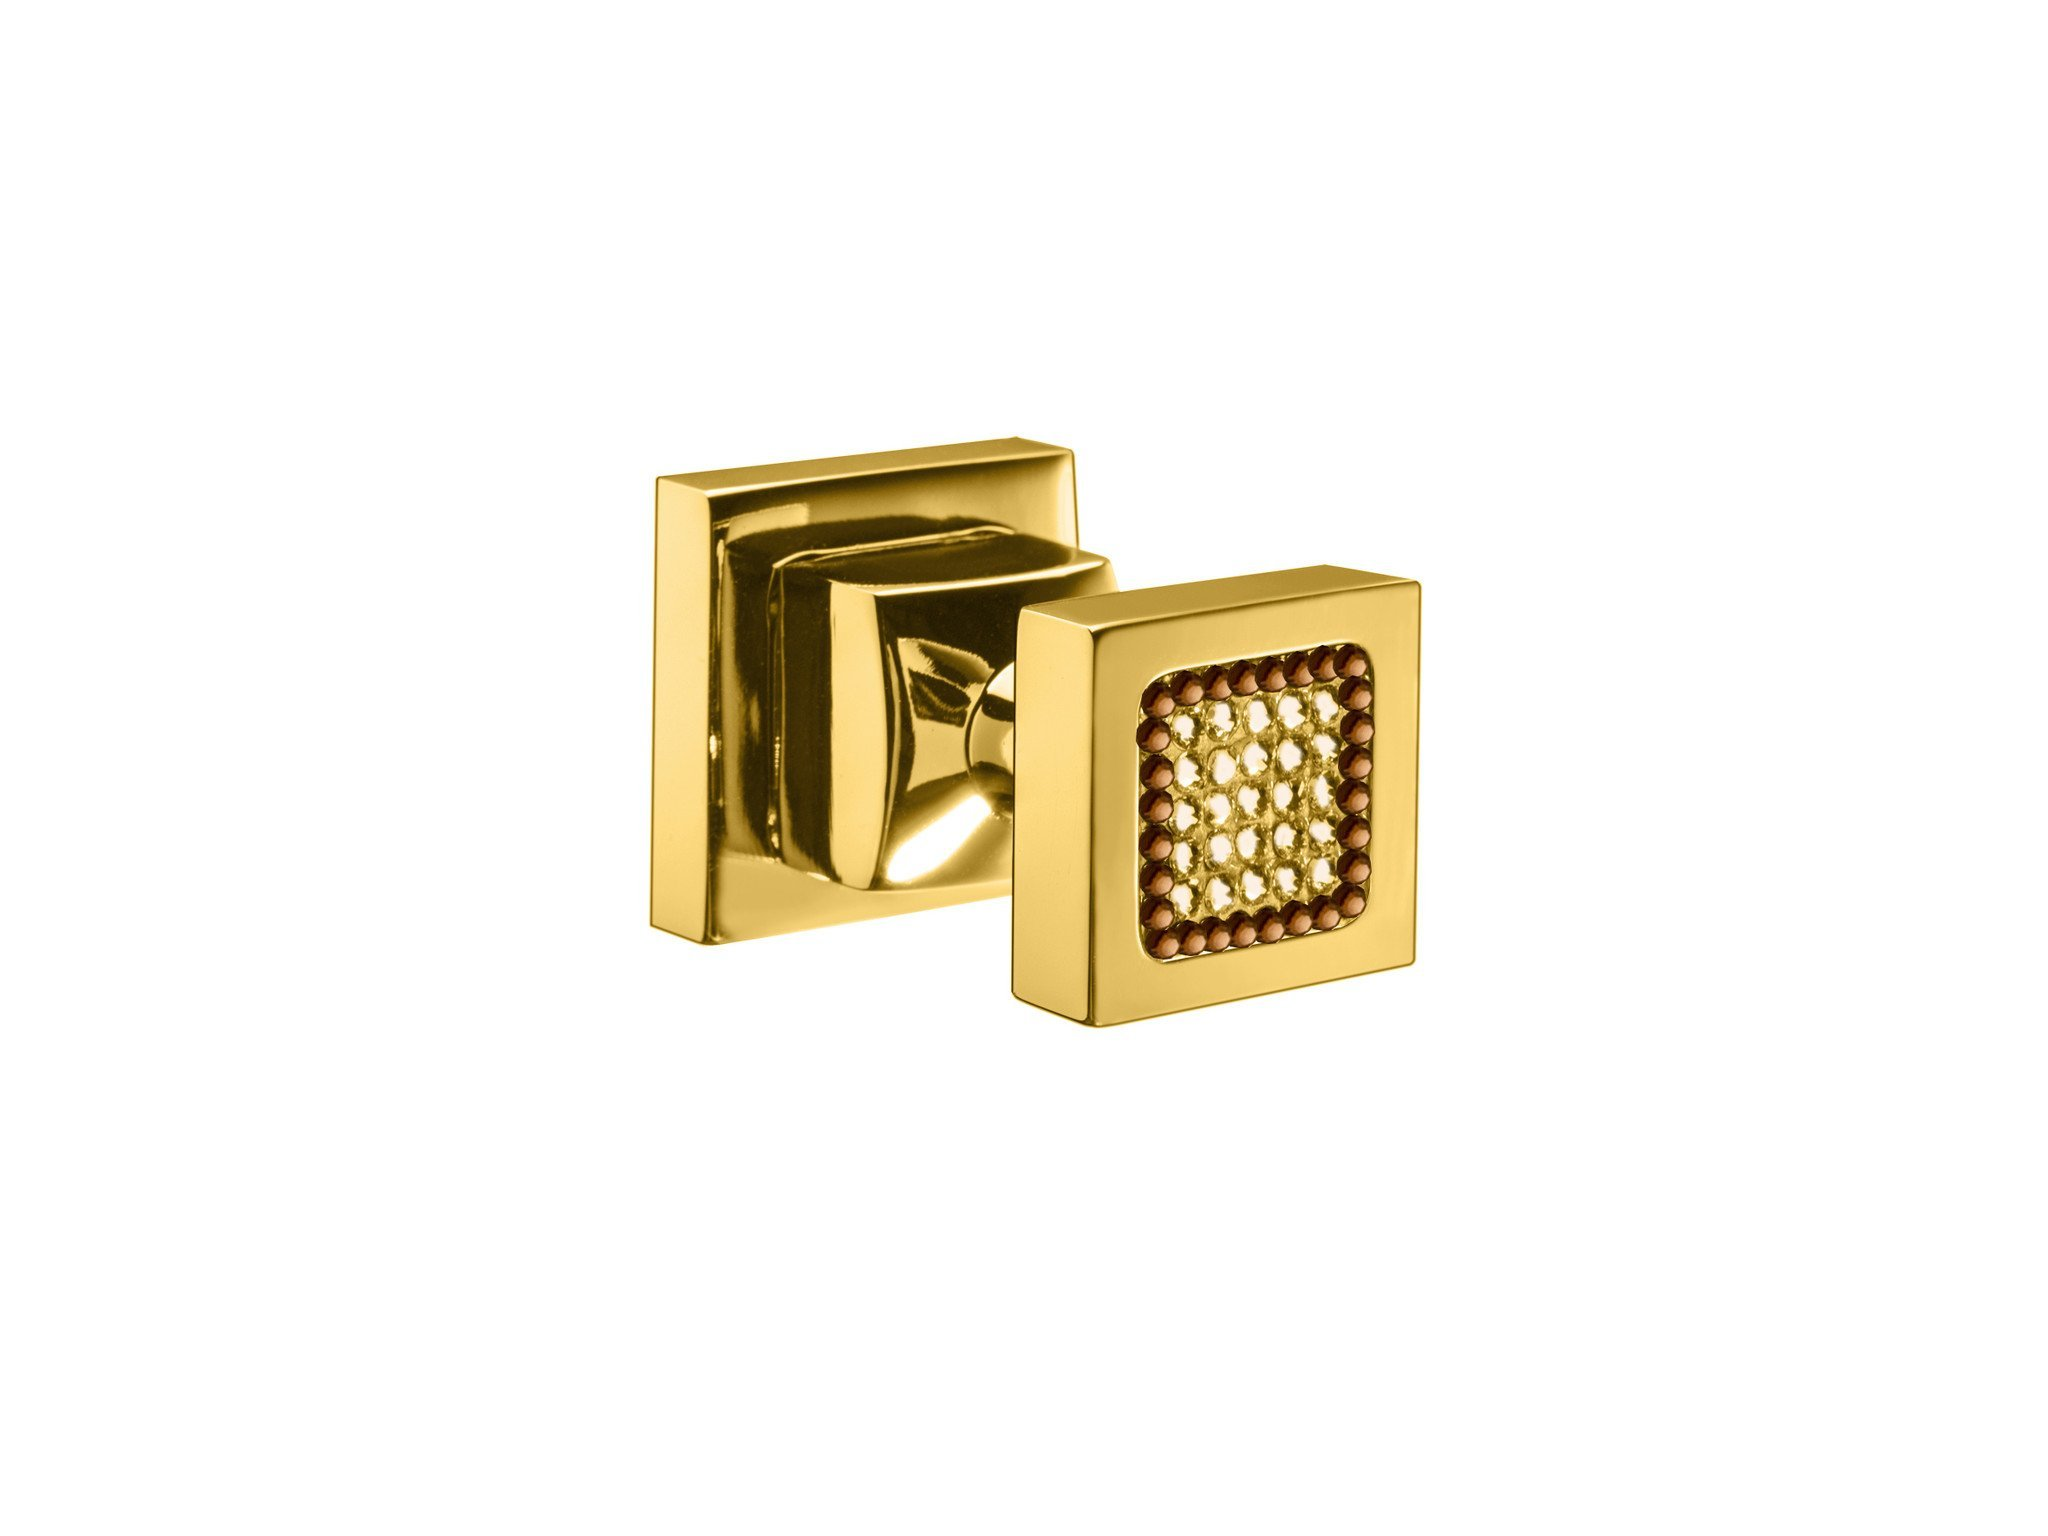 Starlight Brass Towel Robe Hook for Bathroom Towel Holder / Coat Hanger W/ Swarovski Crystals (Polished Gold)